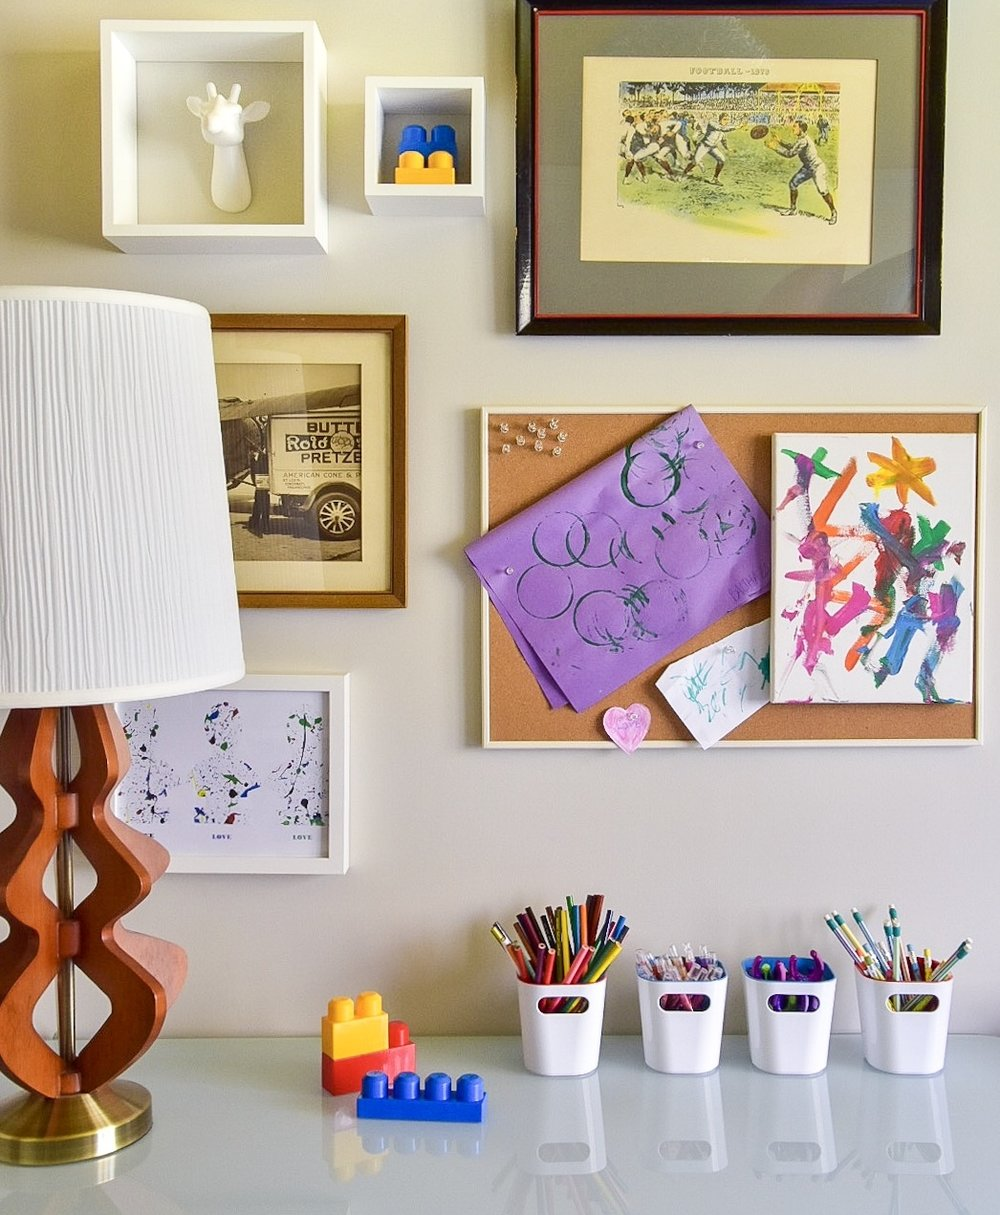 Eclectic modern Colorful kids room gallery wall by Diane Rath The Rath Project